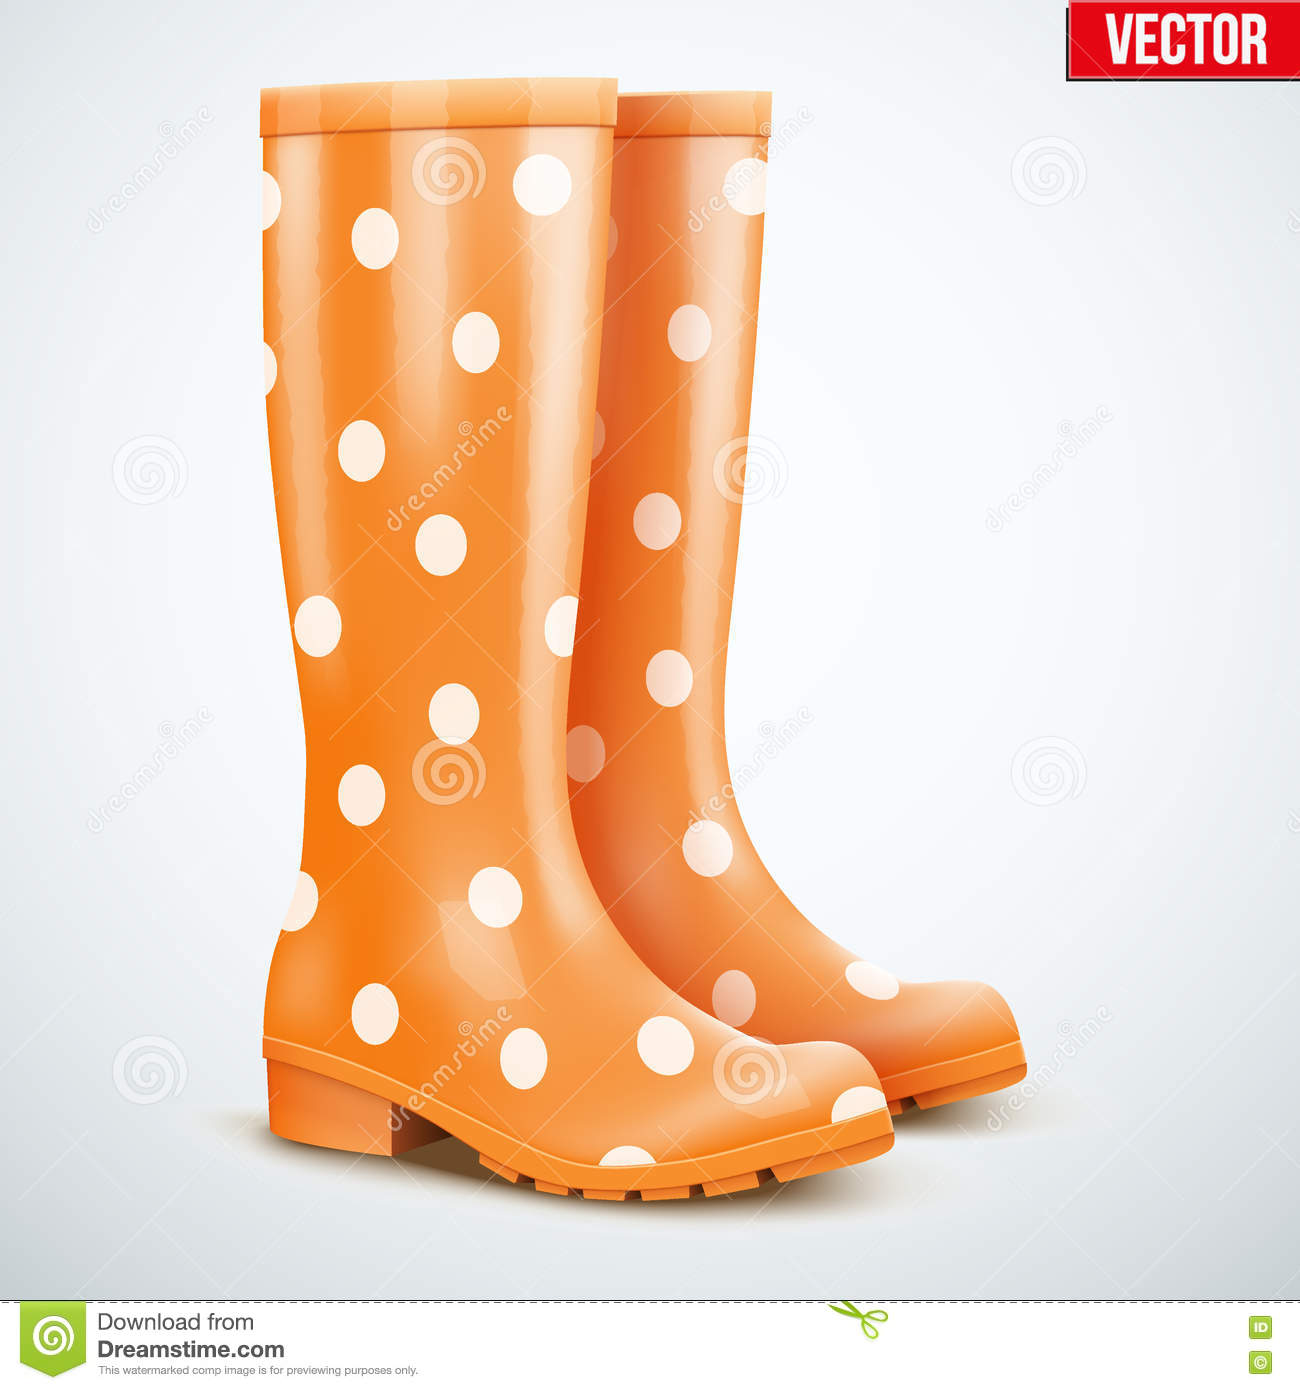 Pair Of Orange Rain Boots Stock Vector - Image: 74127902